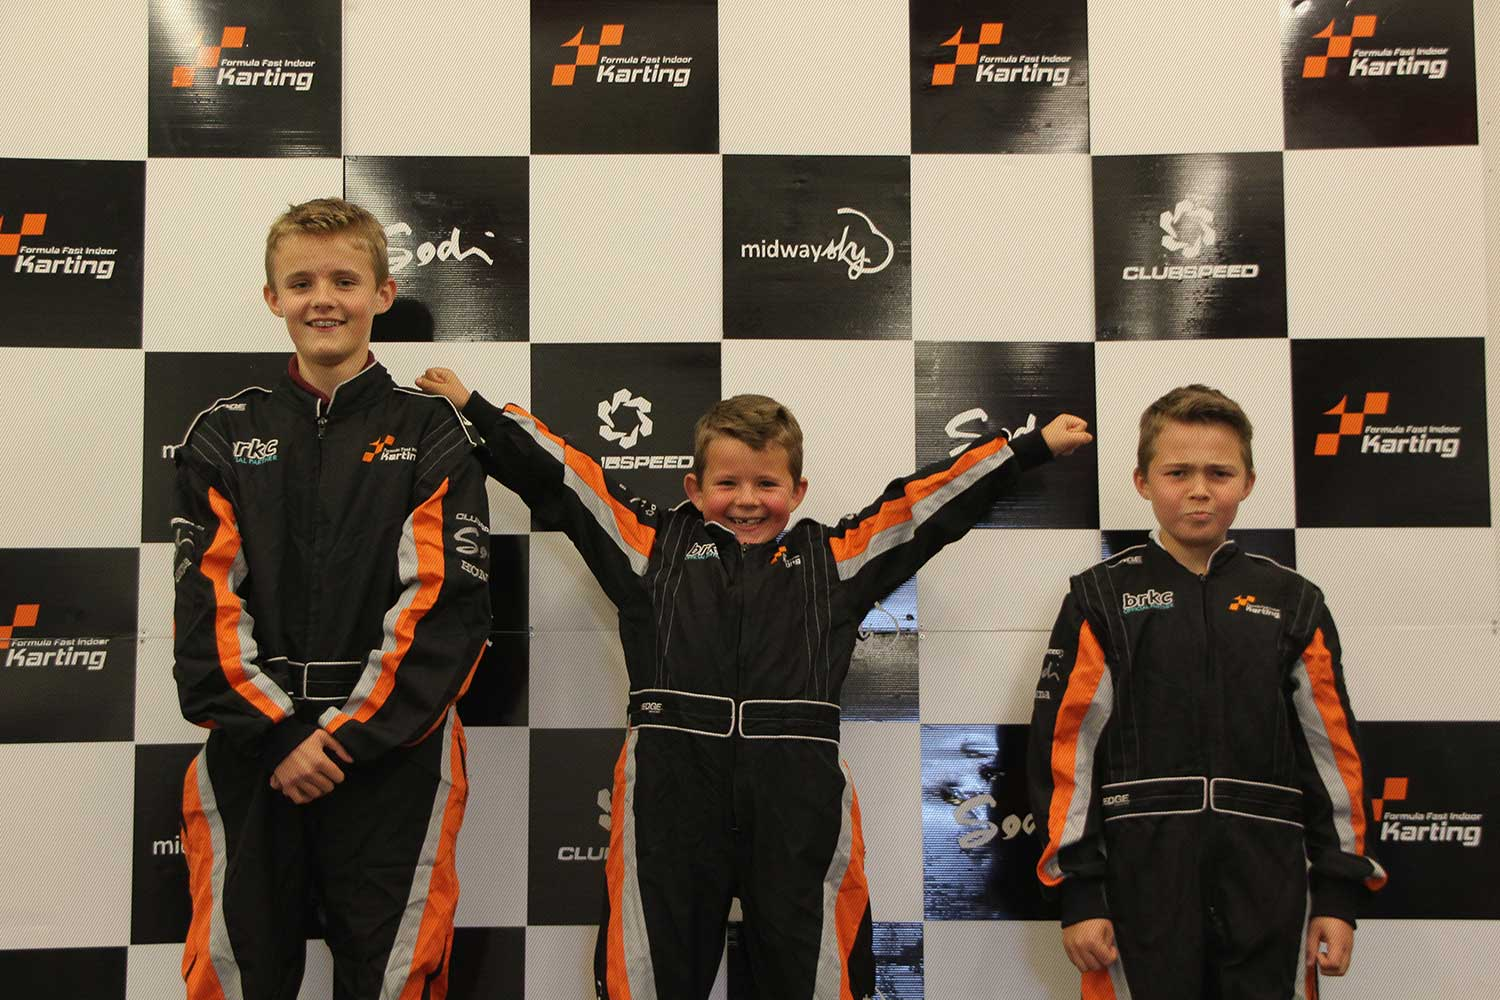 Kids On The Podium